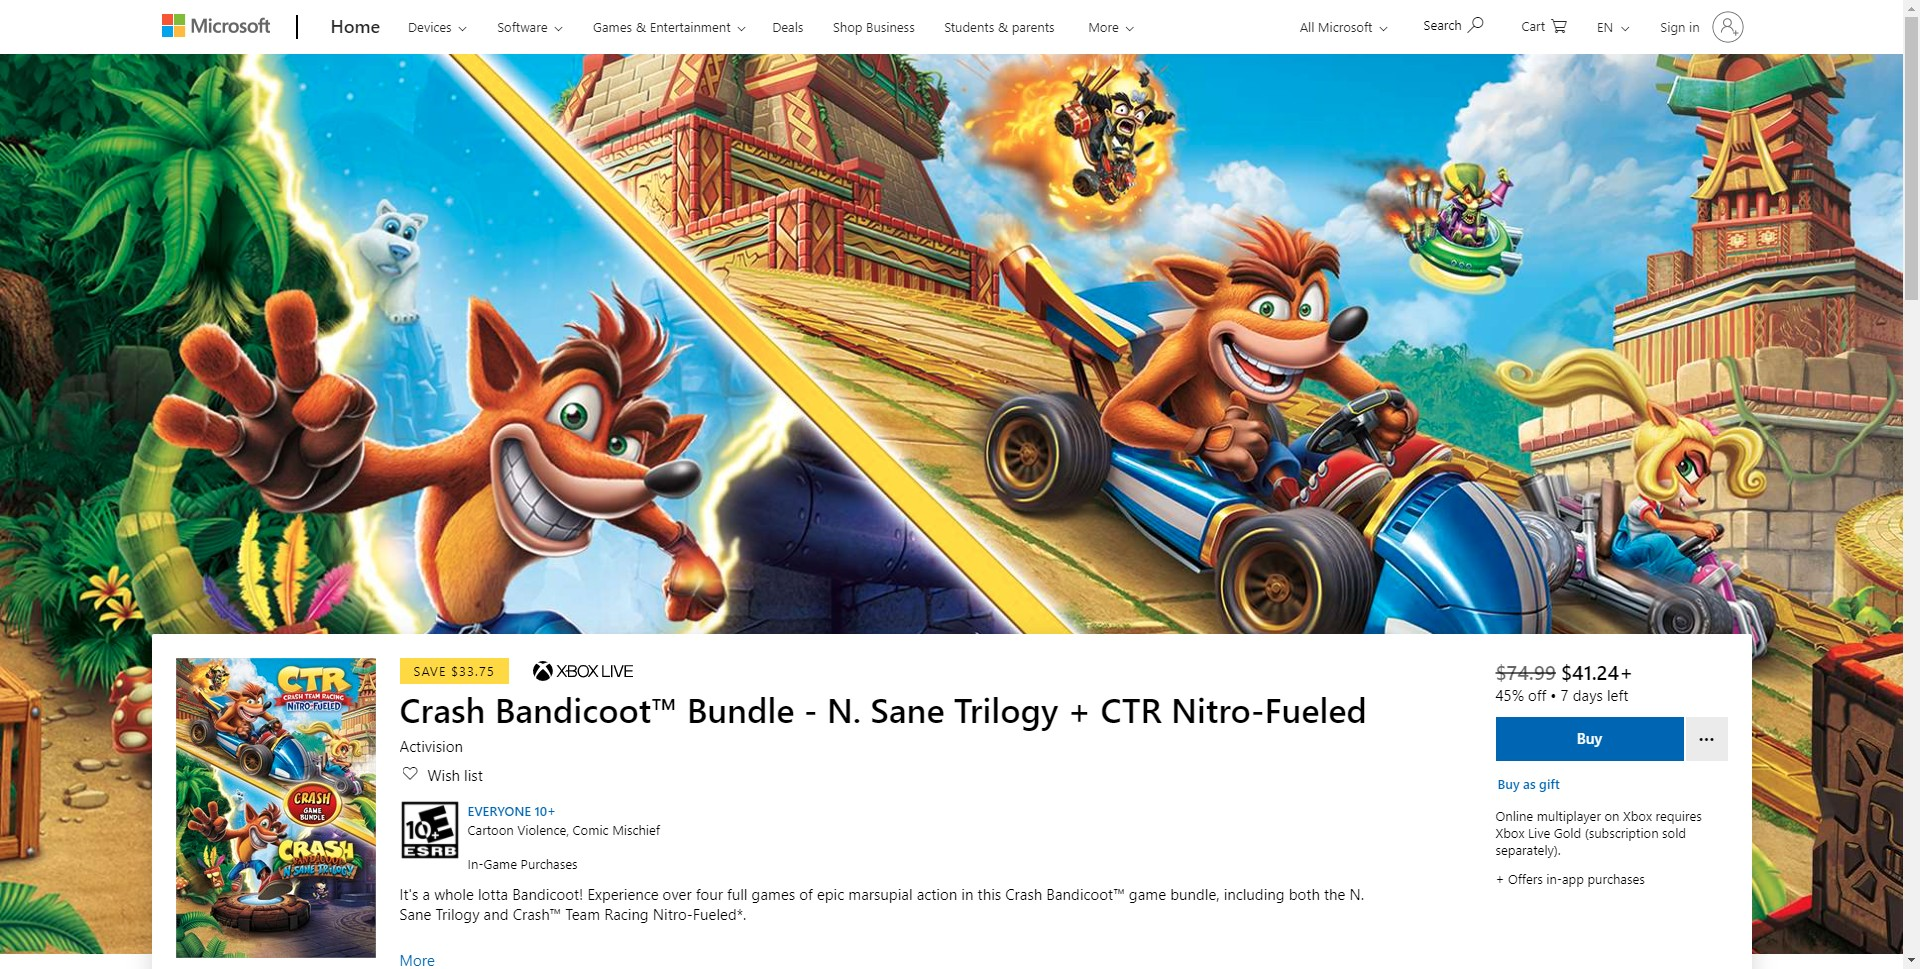 Microsoft Store Crash Bandicoot N Sane Trilogy And Crash Team Racing Nitro Fueled Bundle For Xbox One Is On Sale For 41 24 7 Days Left Crashy News